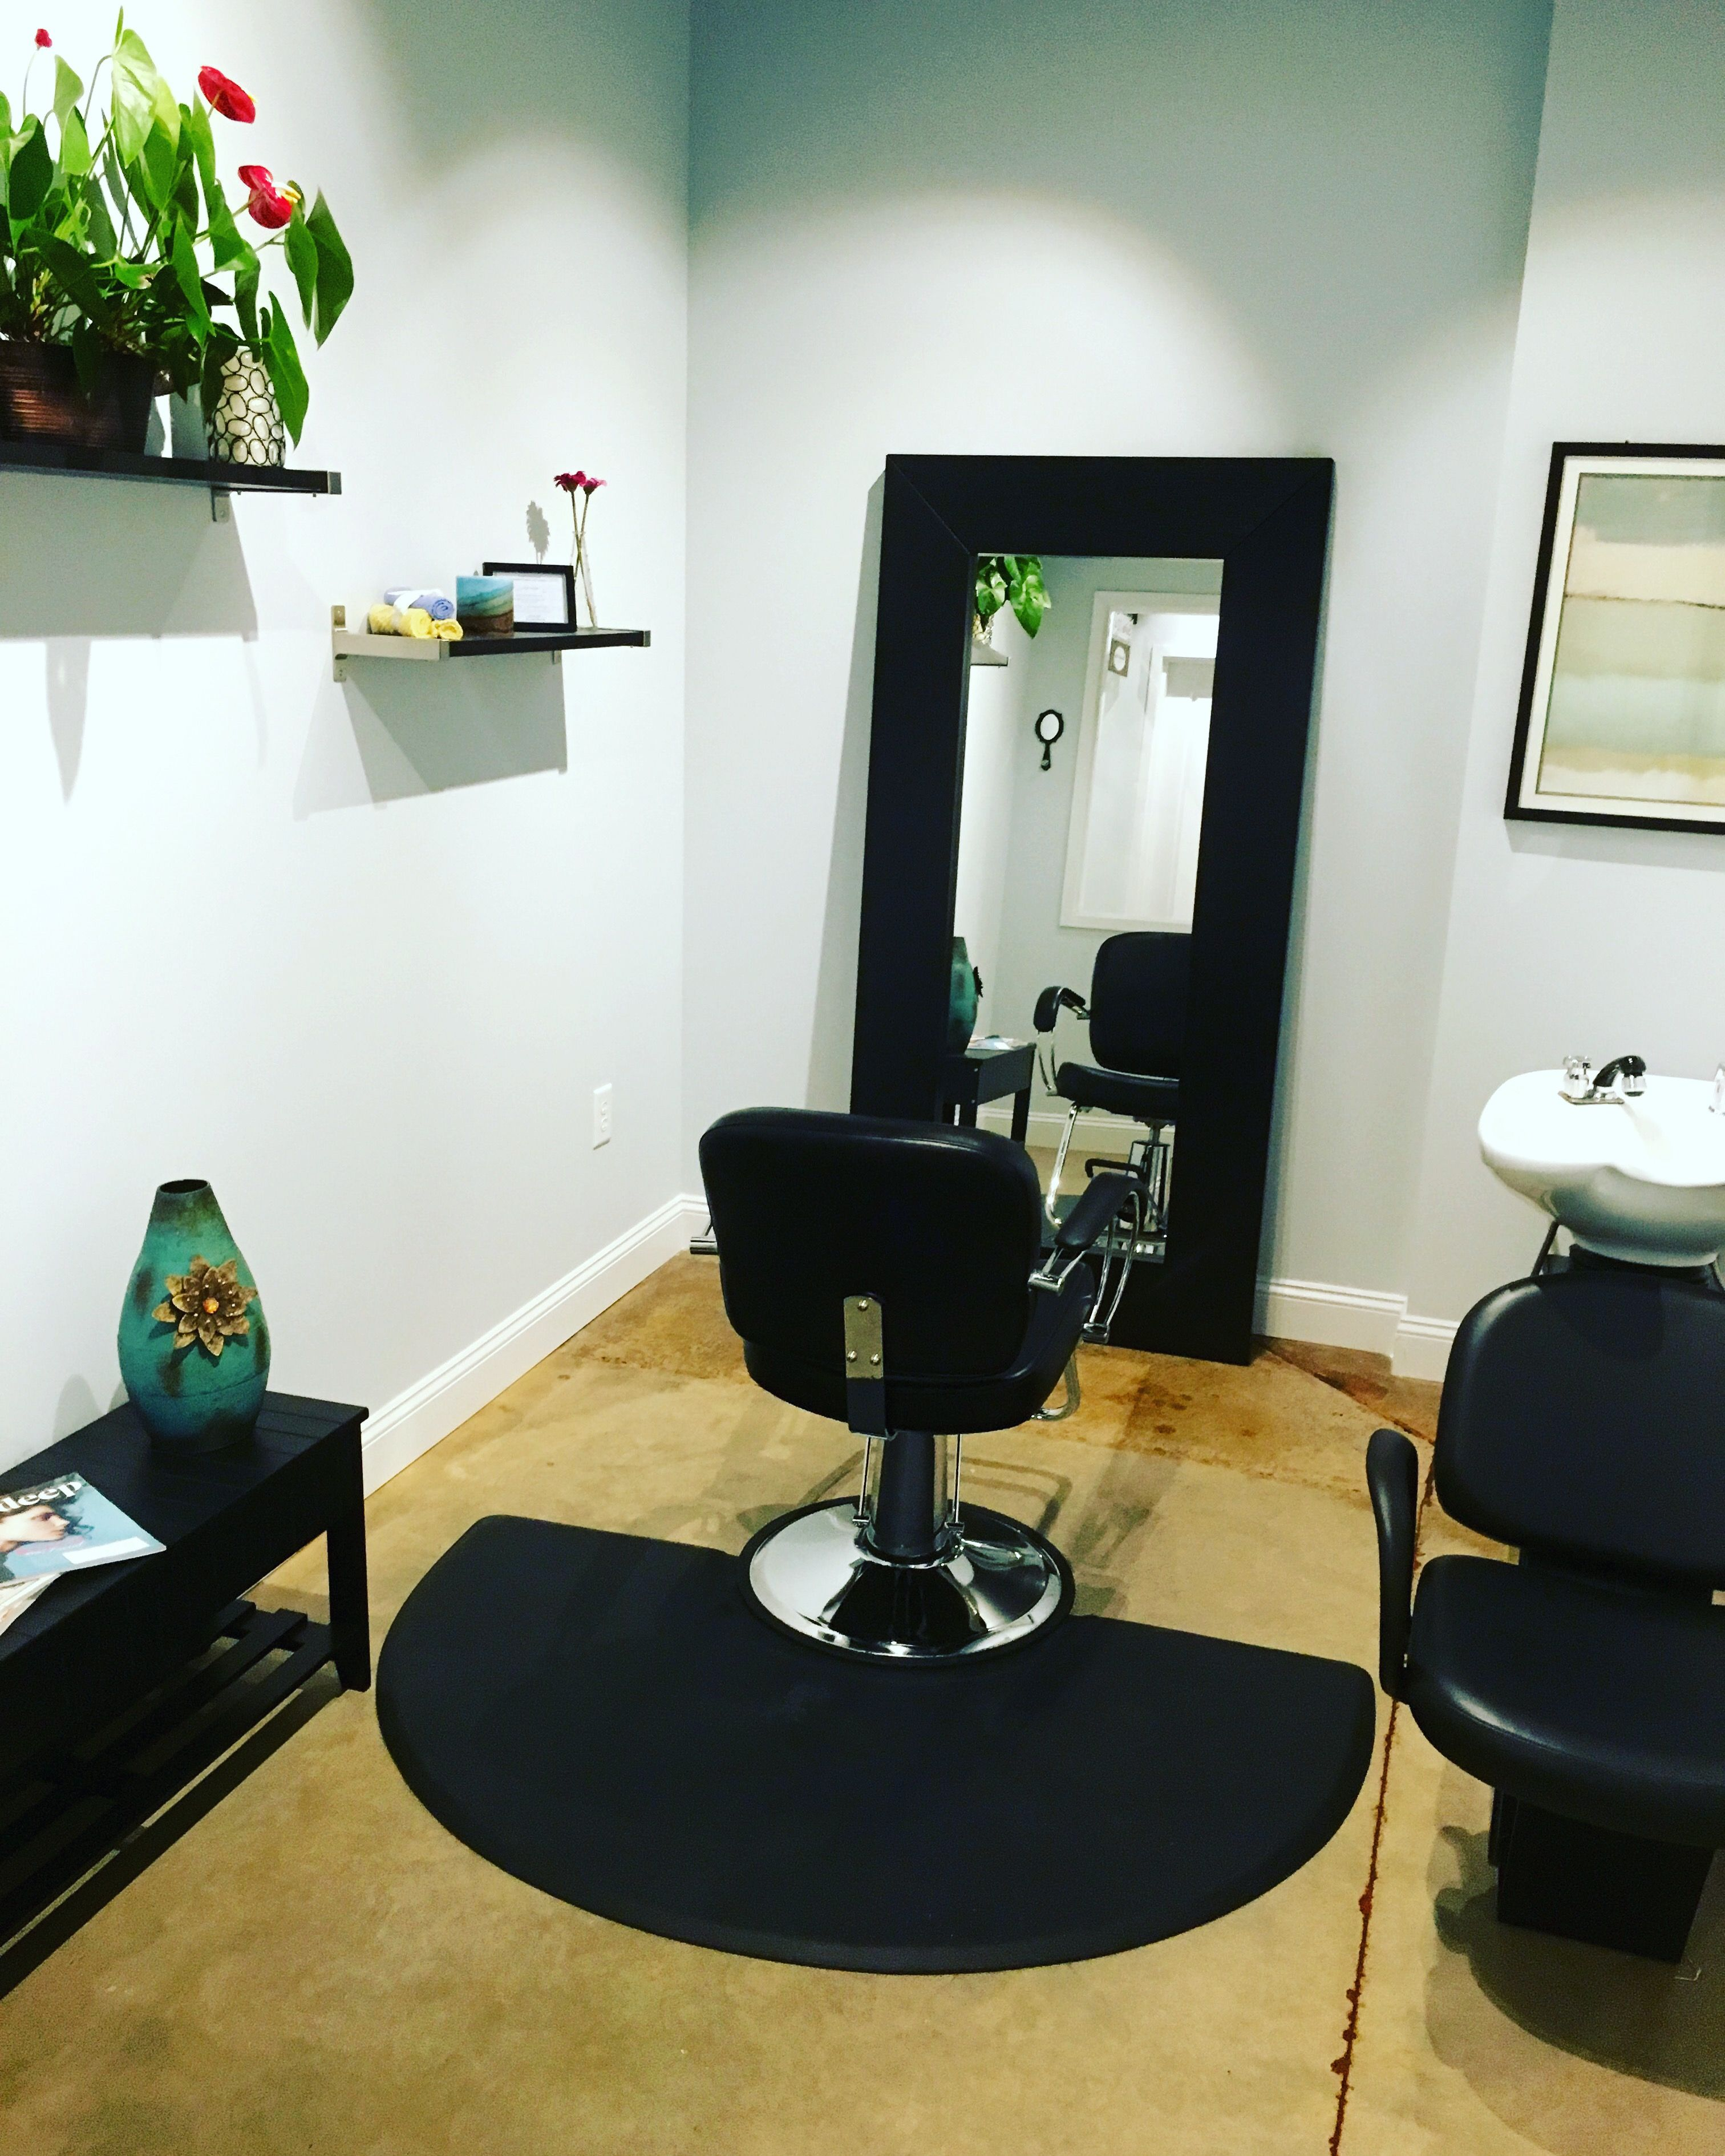 Suite 16 #showroom #hairstylist #availablesuites